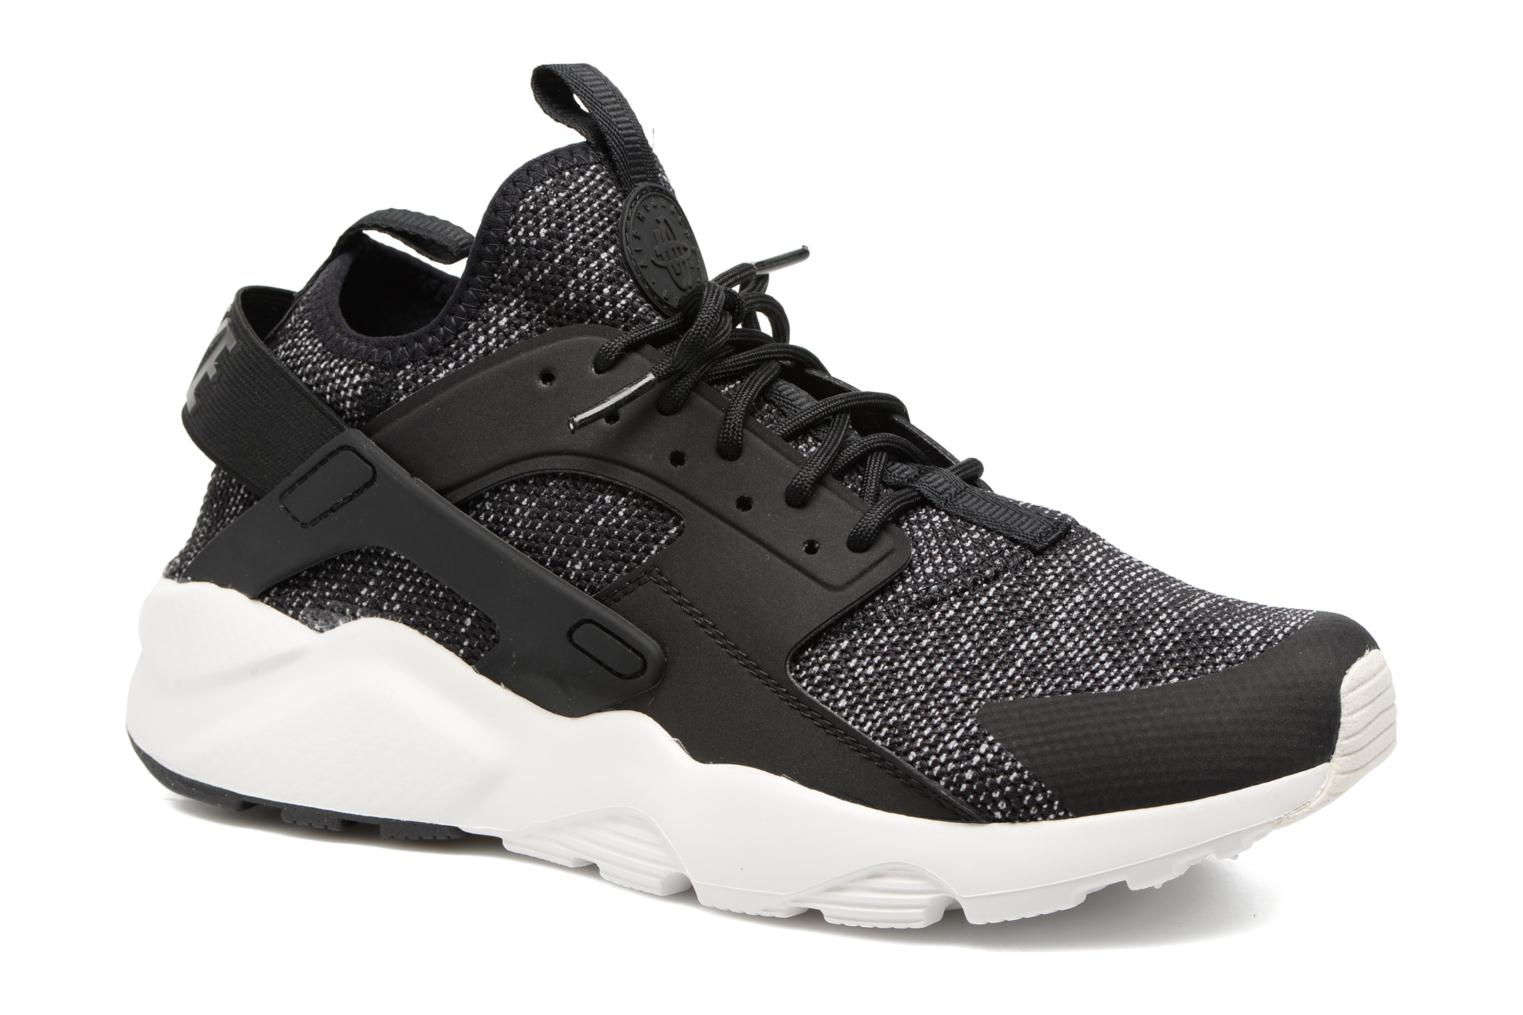 Nike Air Huarache Run Ultra Br Black/Black-Summit White